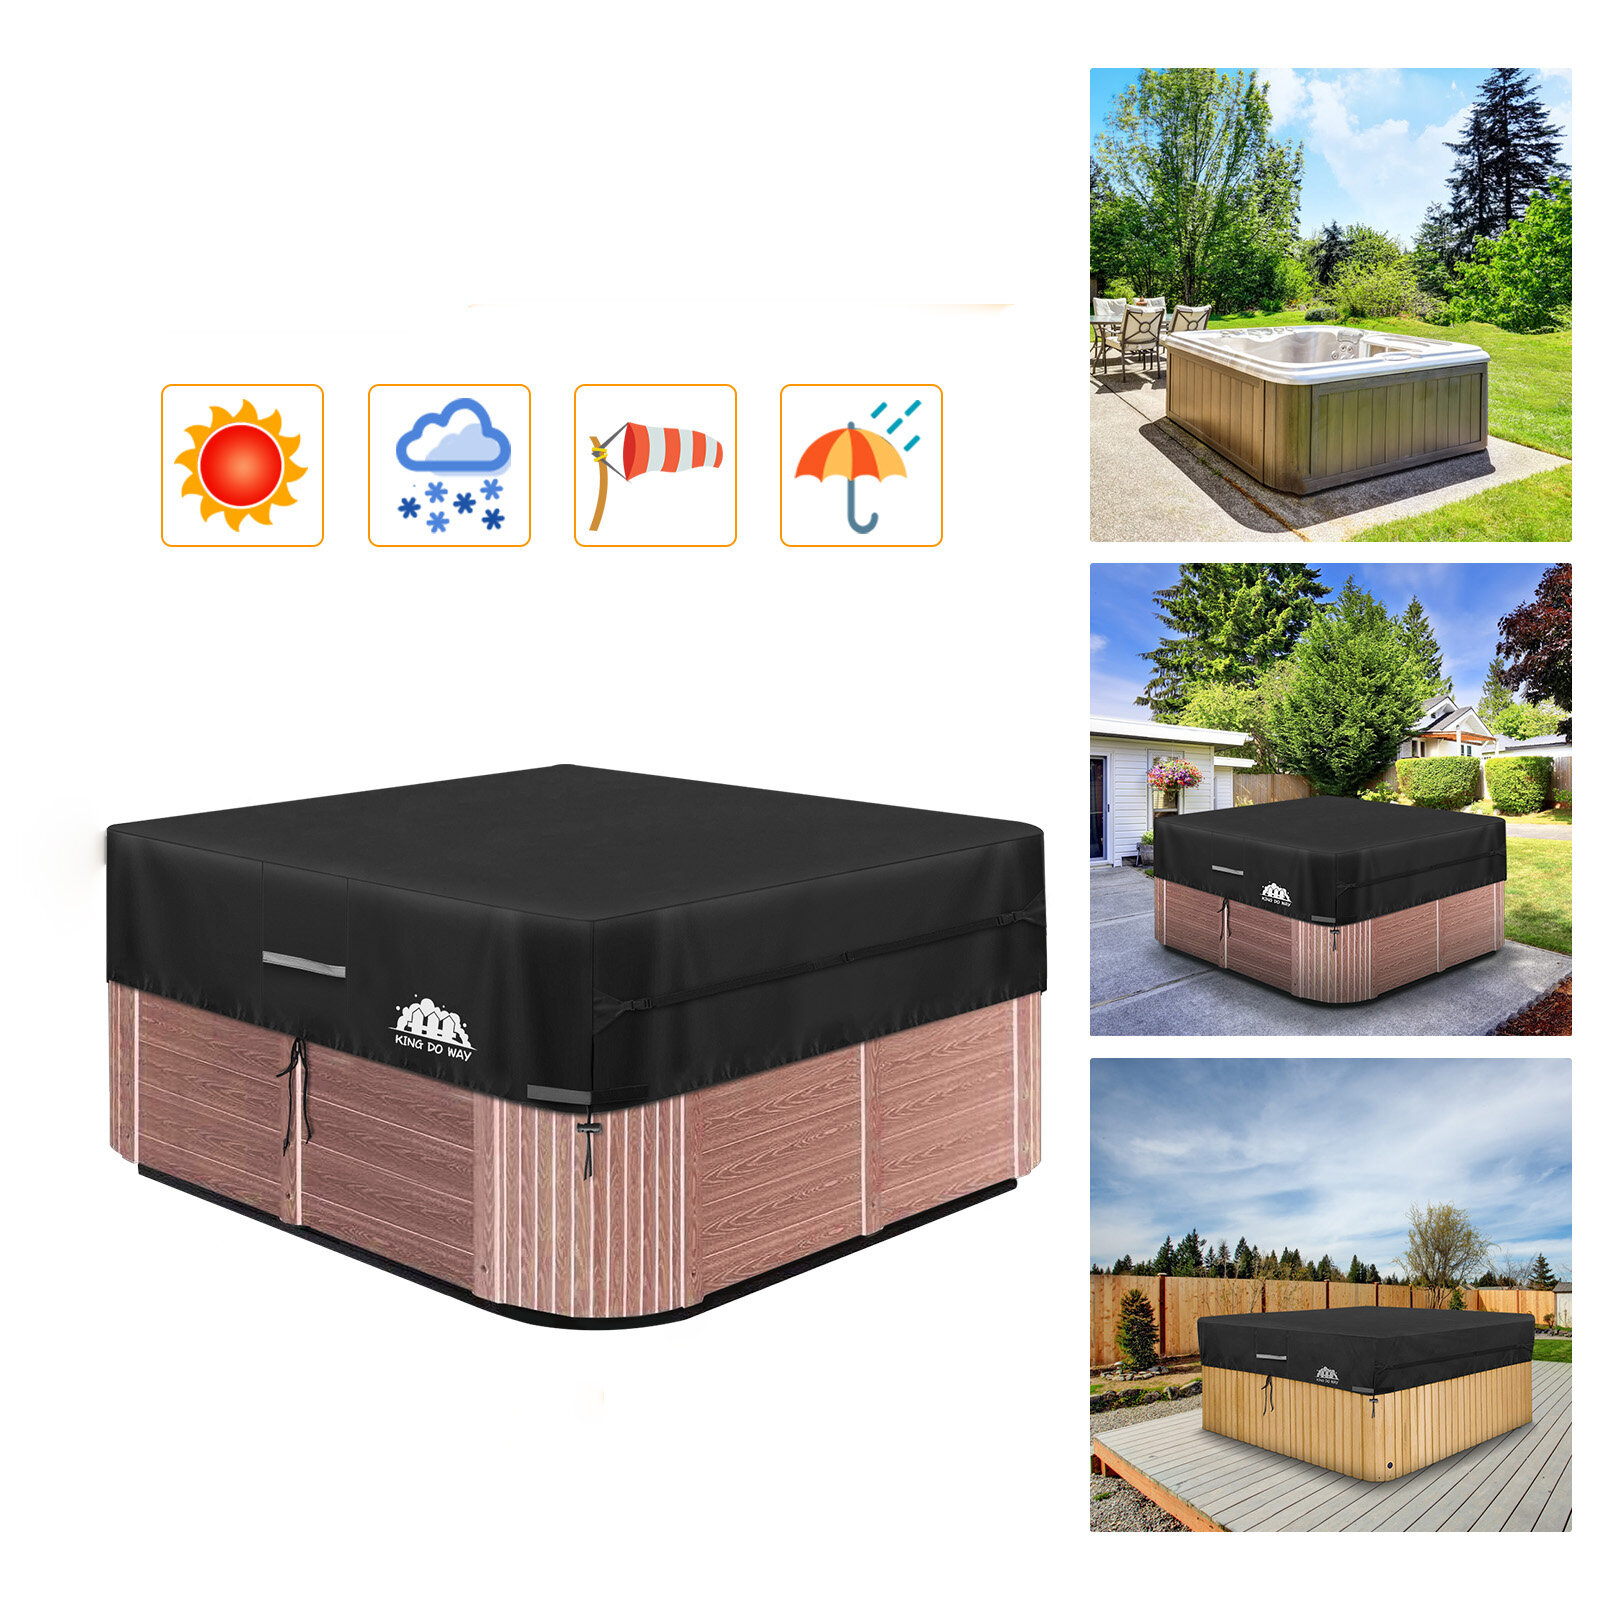 87inch Black Heavy Duty Hot Tub Cover Water-Resistant Polyester Spa Cover